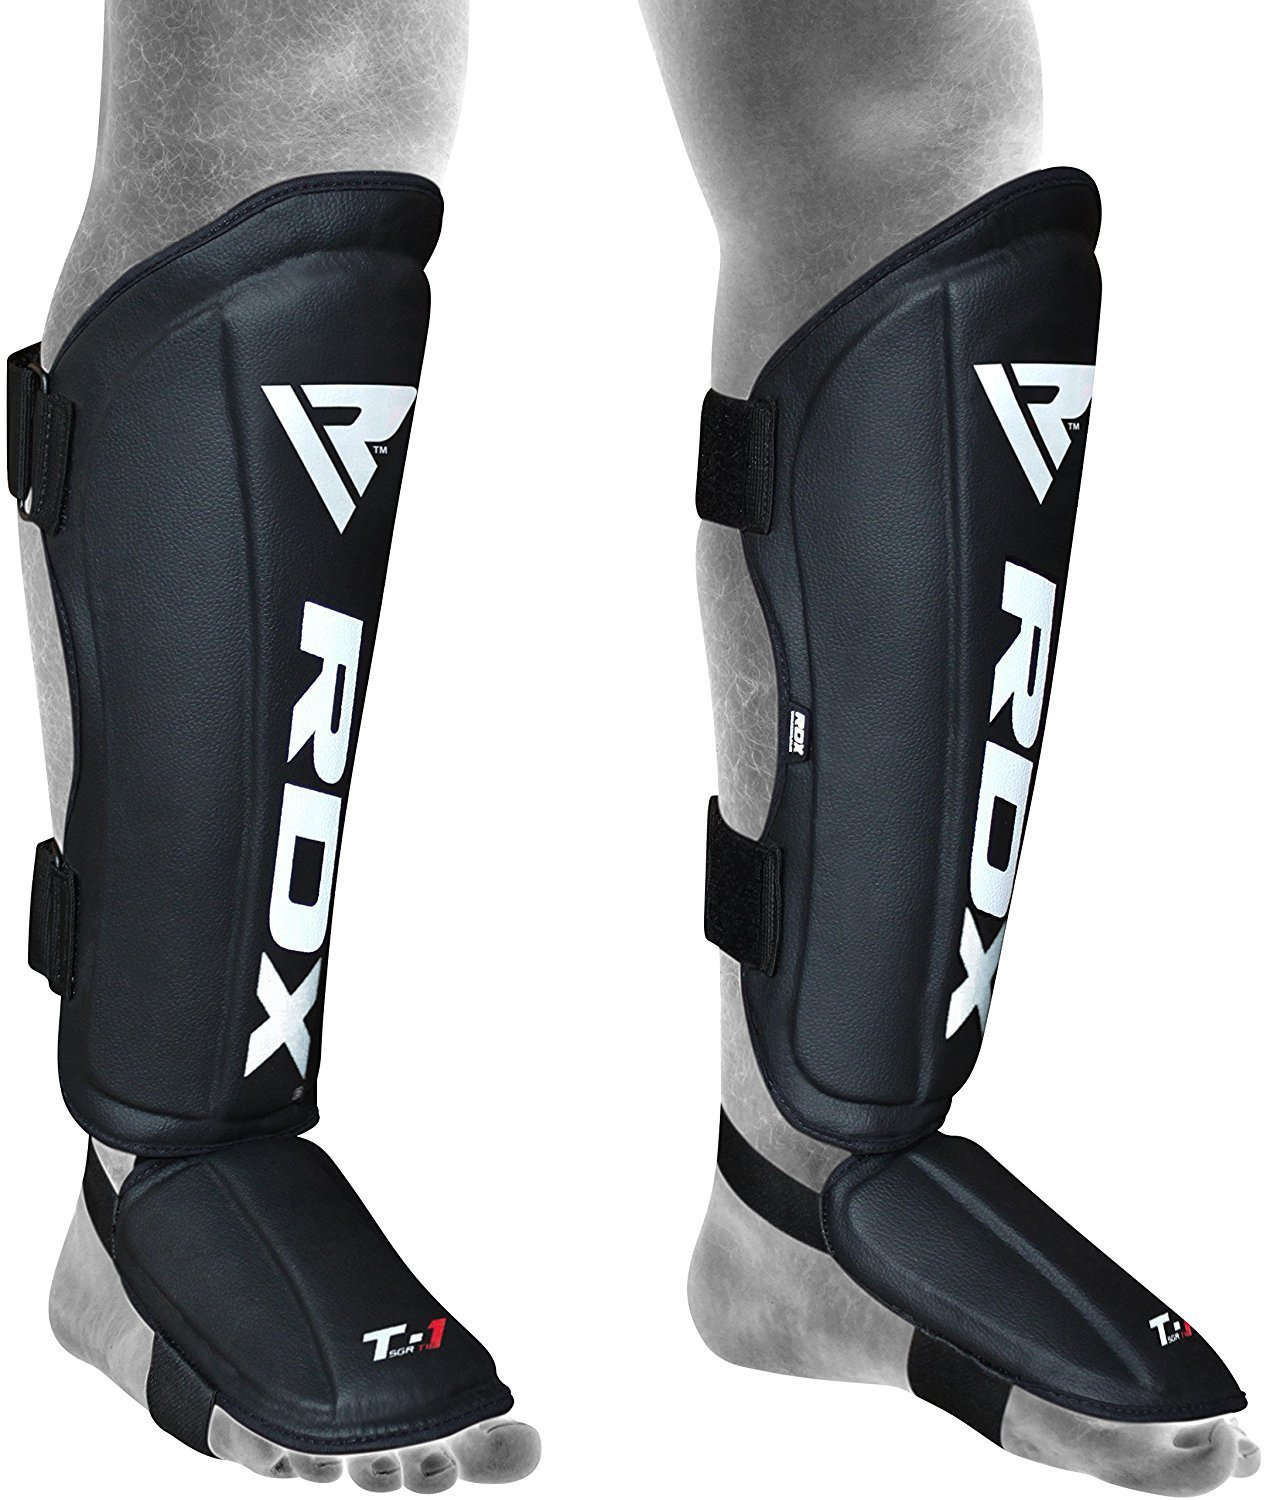 RDX Leather MMA Shin Guards Protector